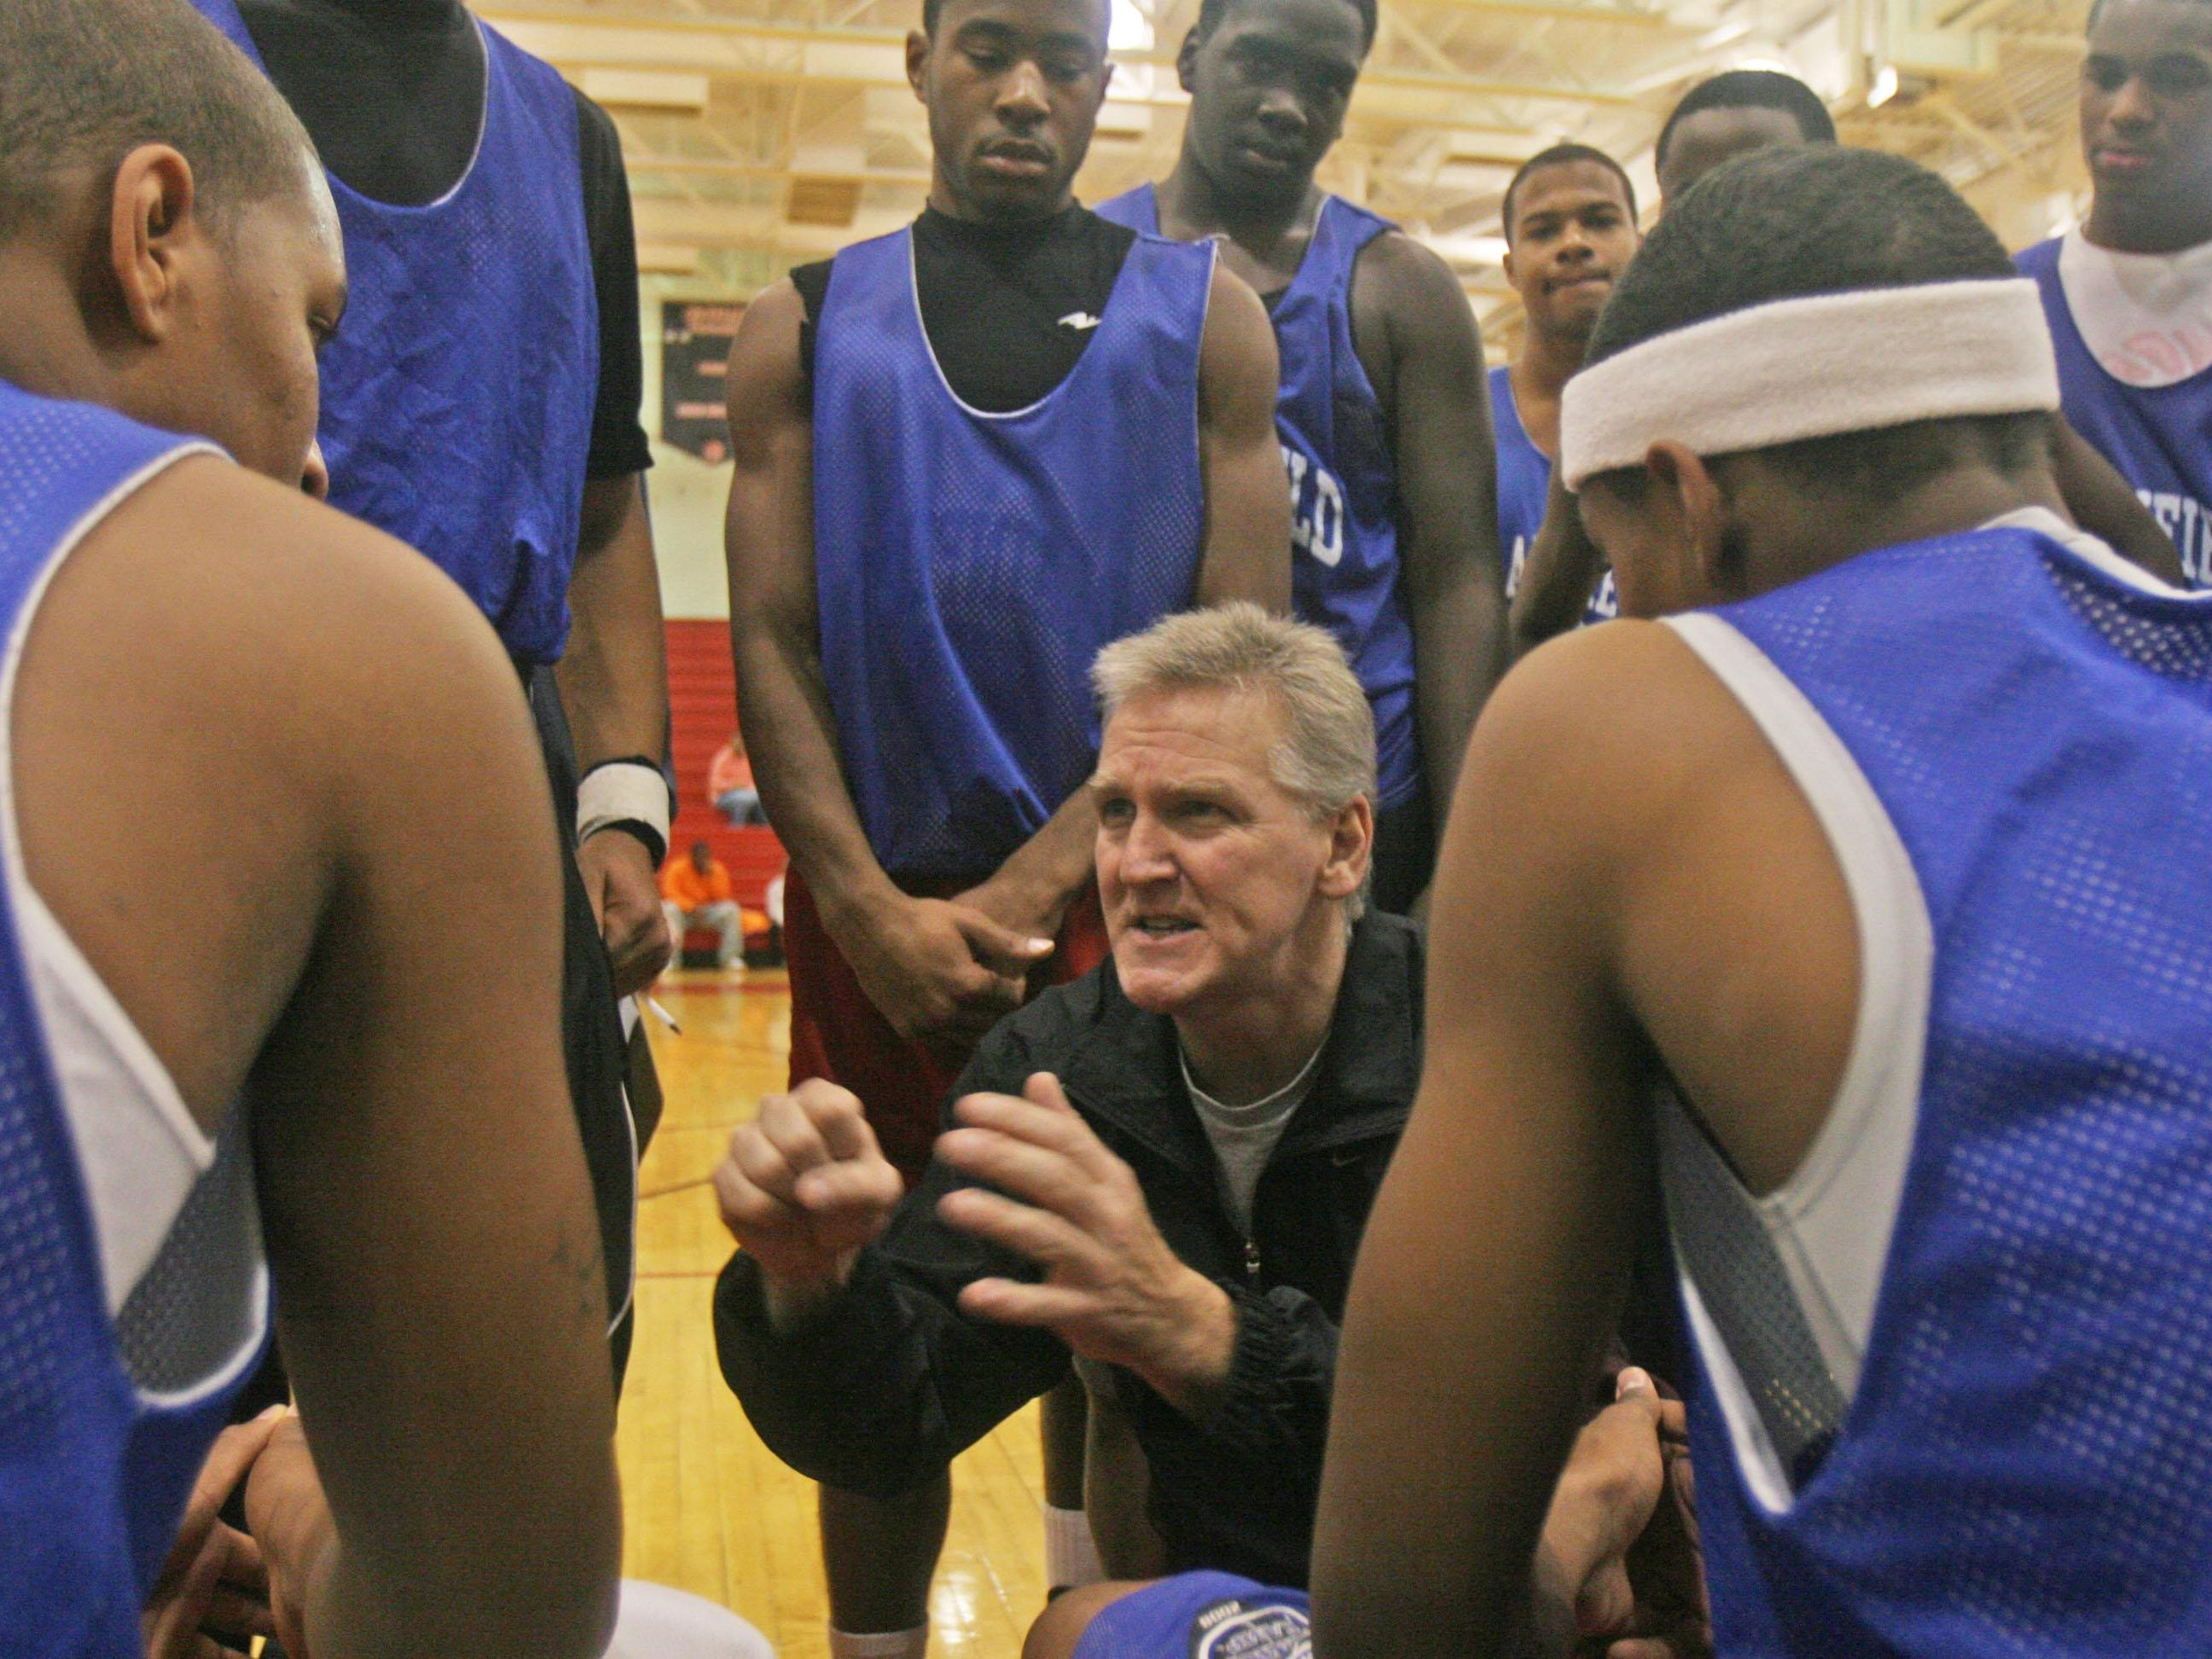 In this 2008 file photo, Rahway High School boys basketball coach Jeff Lubreski instructs players while serving at the helm at Plainfield High School.